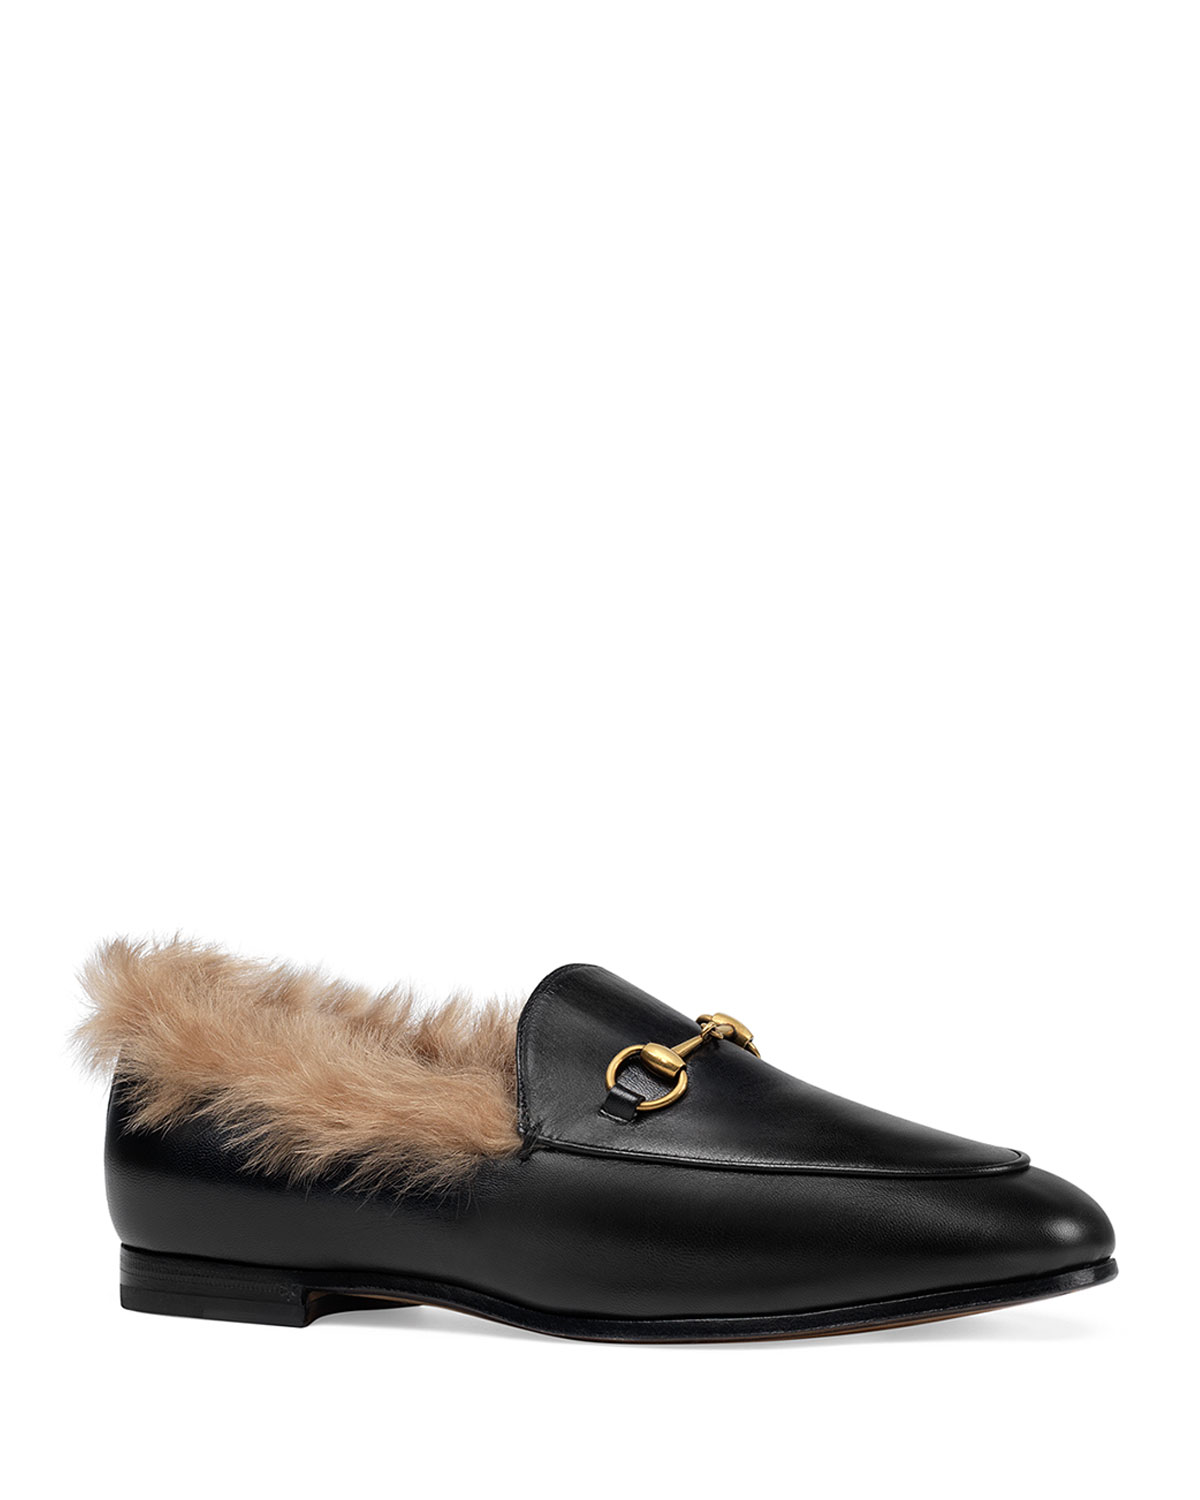 f8652ab02a2 Gucci 10mm Jordaan Leather And Fur Loafer